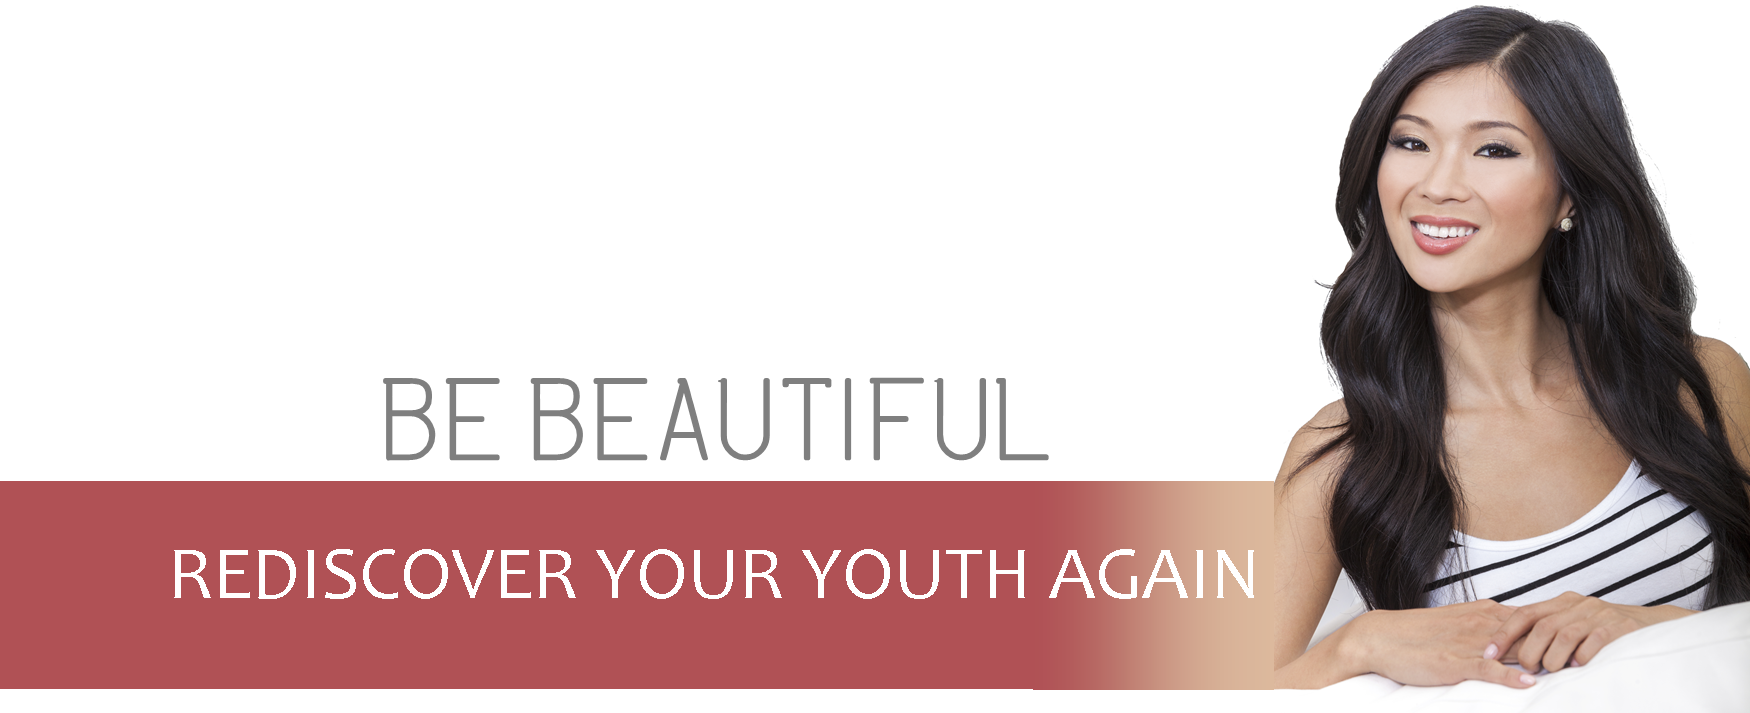 BE BEAUTIFUL REDISCOVER YOUR YOUTH AGAIN WITH PLATINUM MOBILE MEDSPA OF FLORIDA